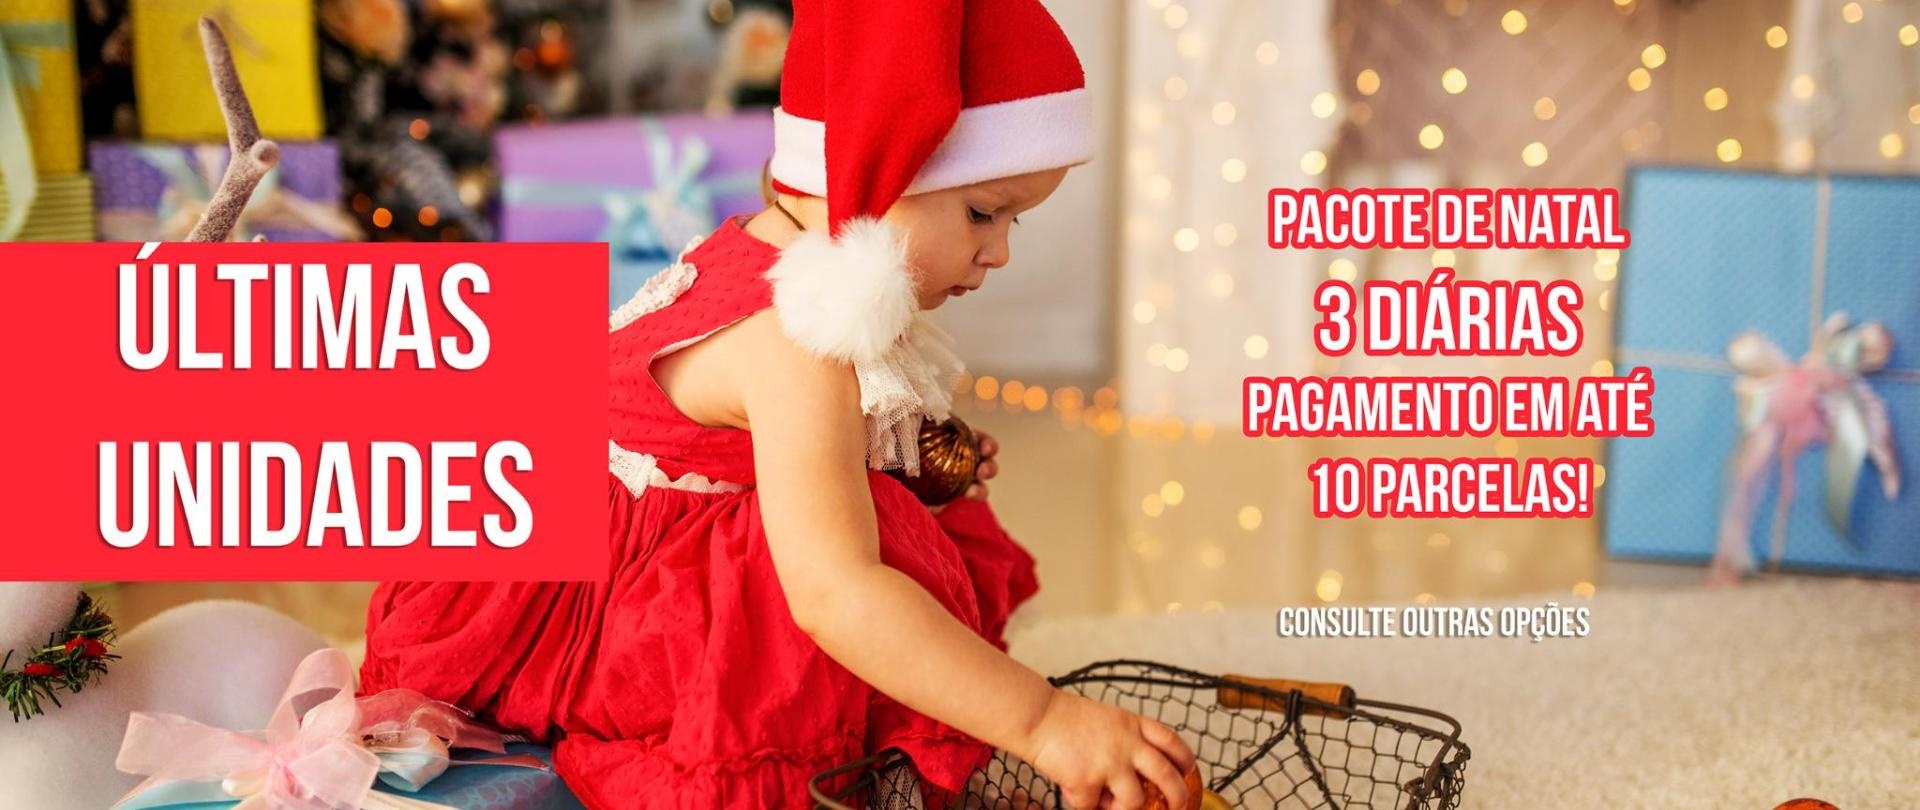 paquete natal.png